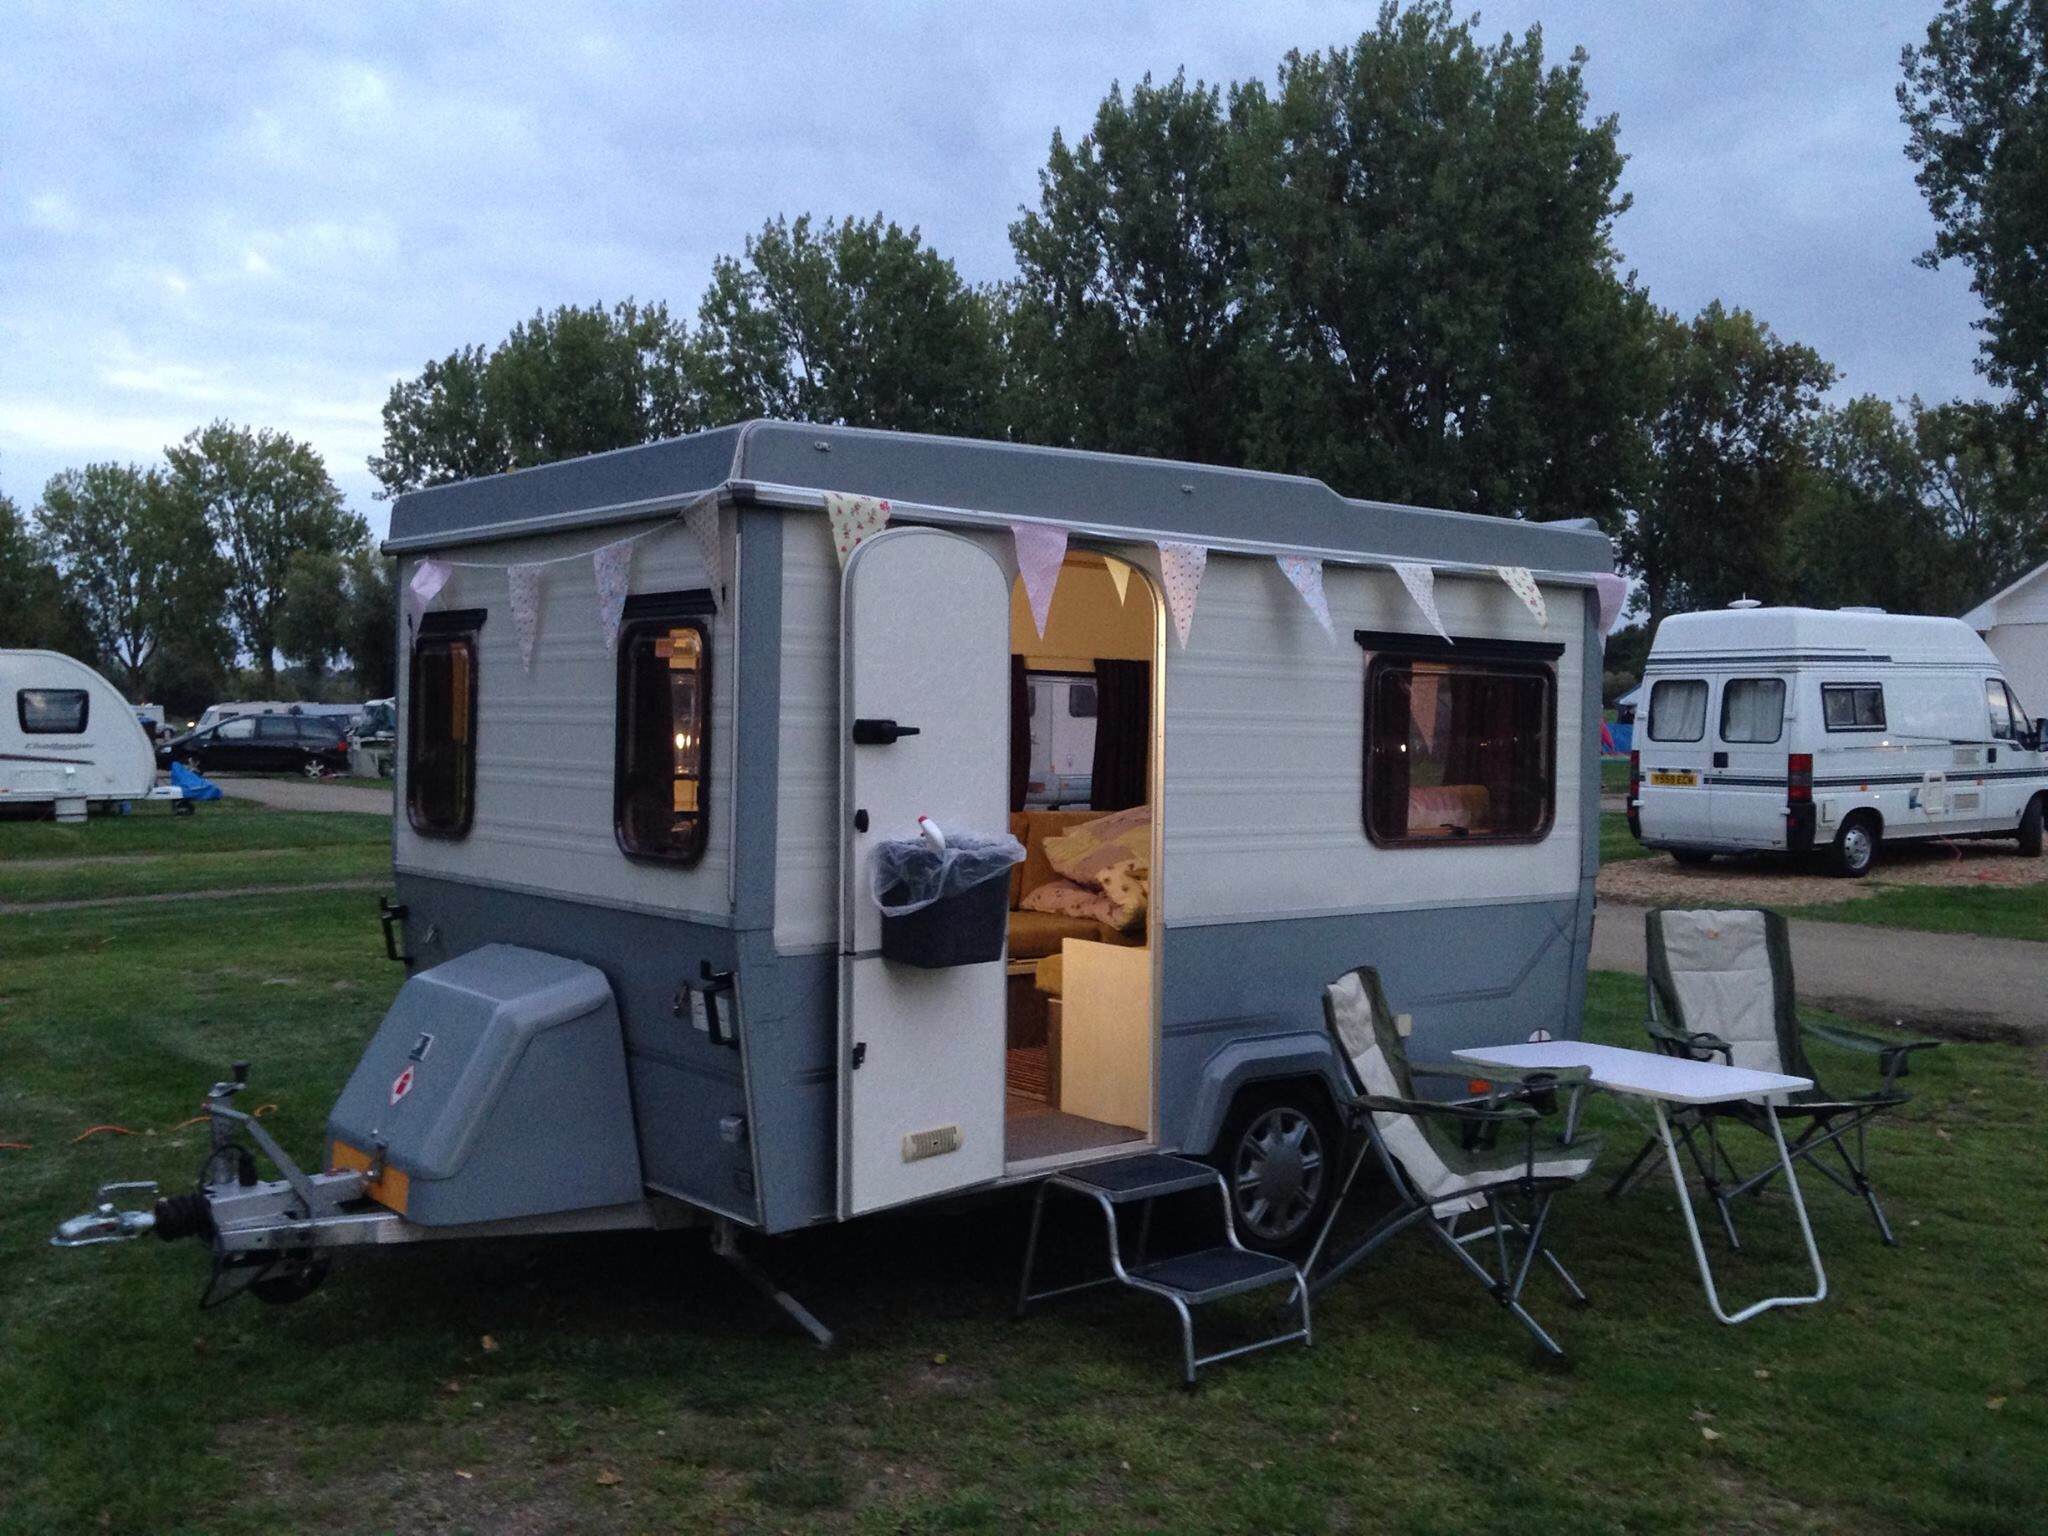 esterel supermatic folding camper with modern paint job. | esterel